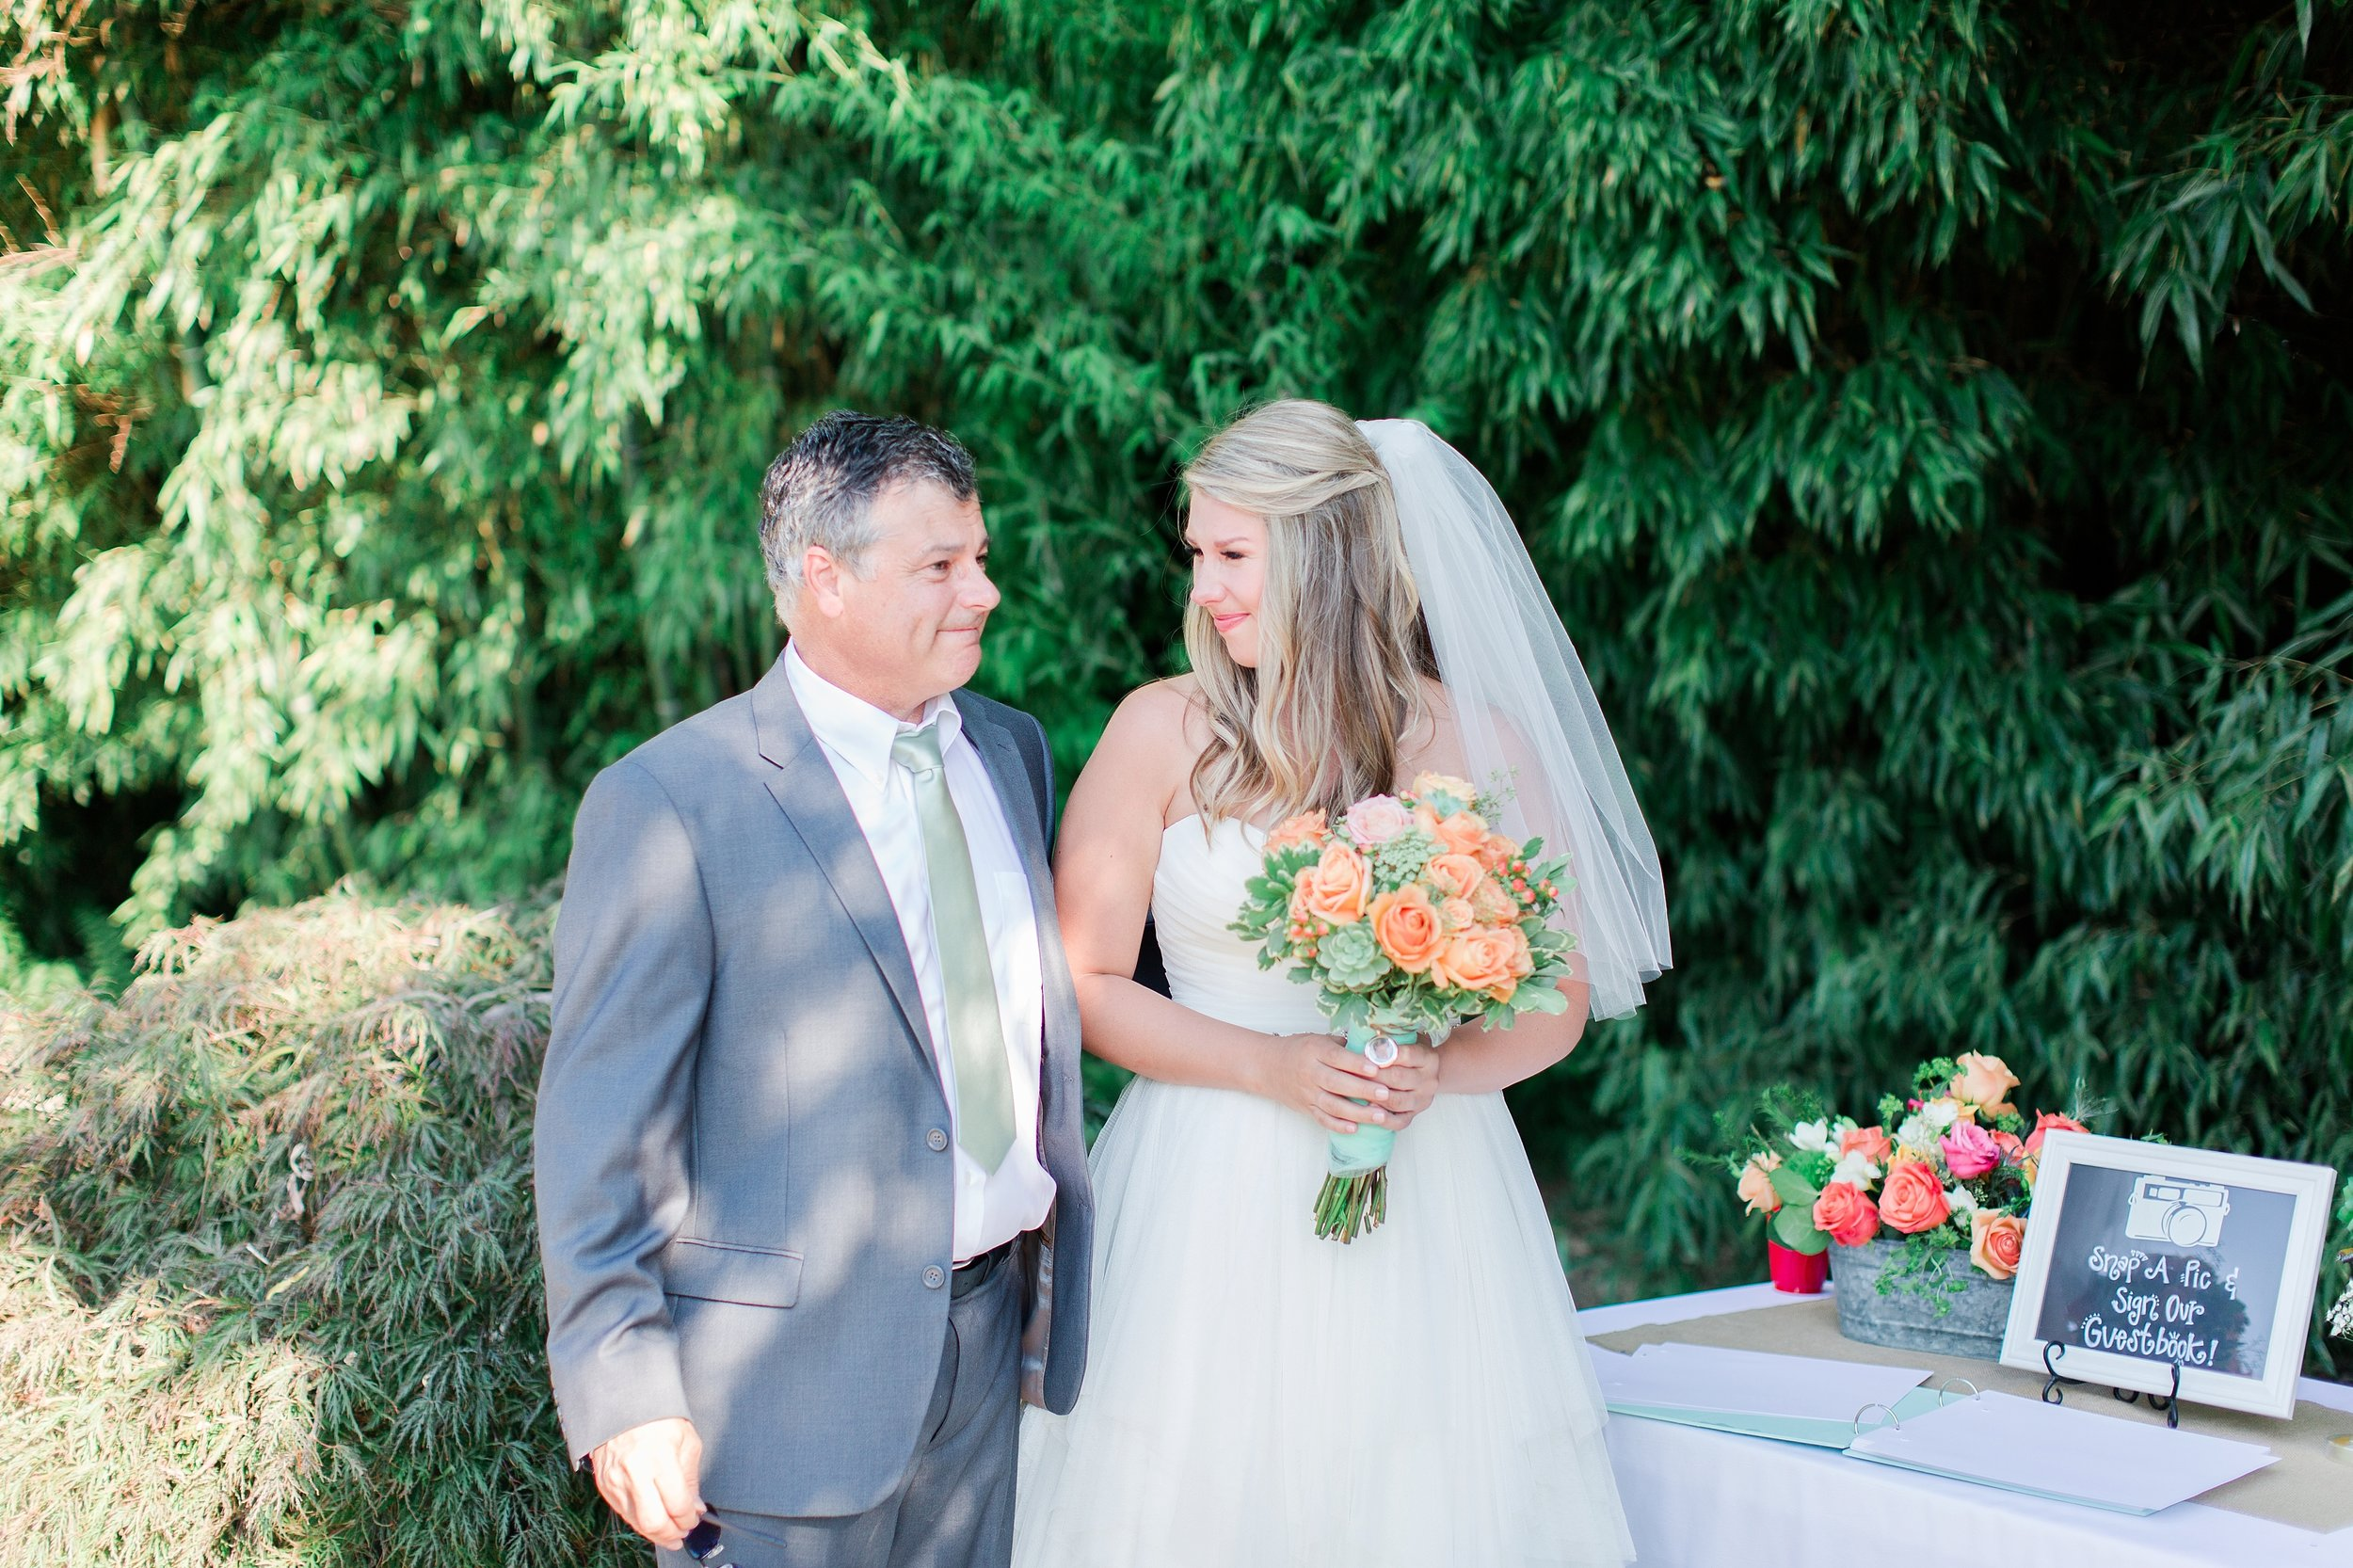 seattle wedding photographer_0202.jpg